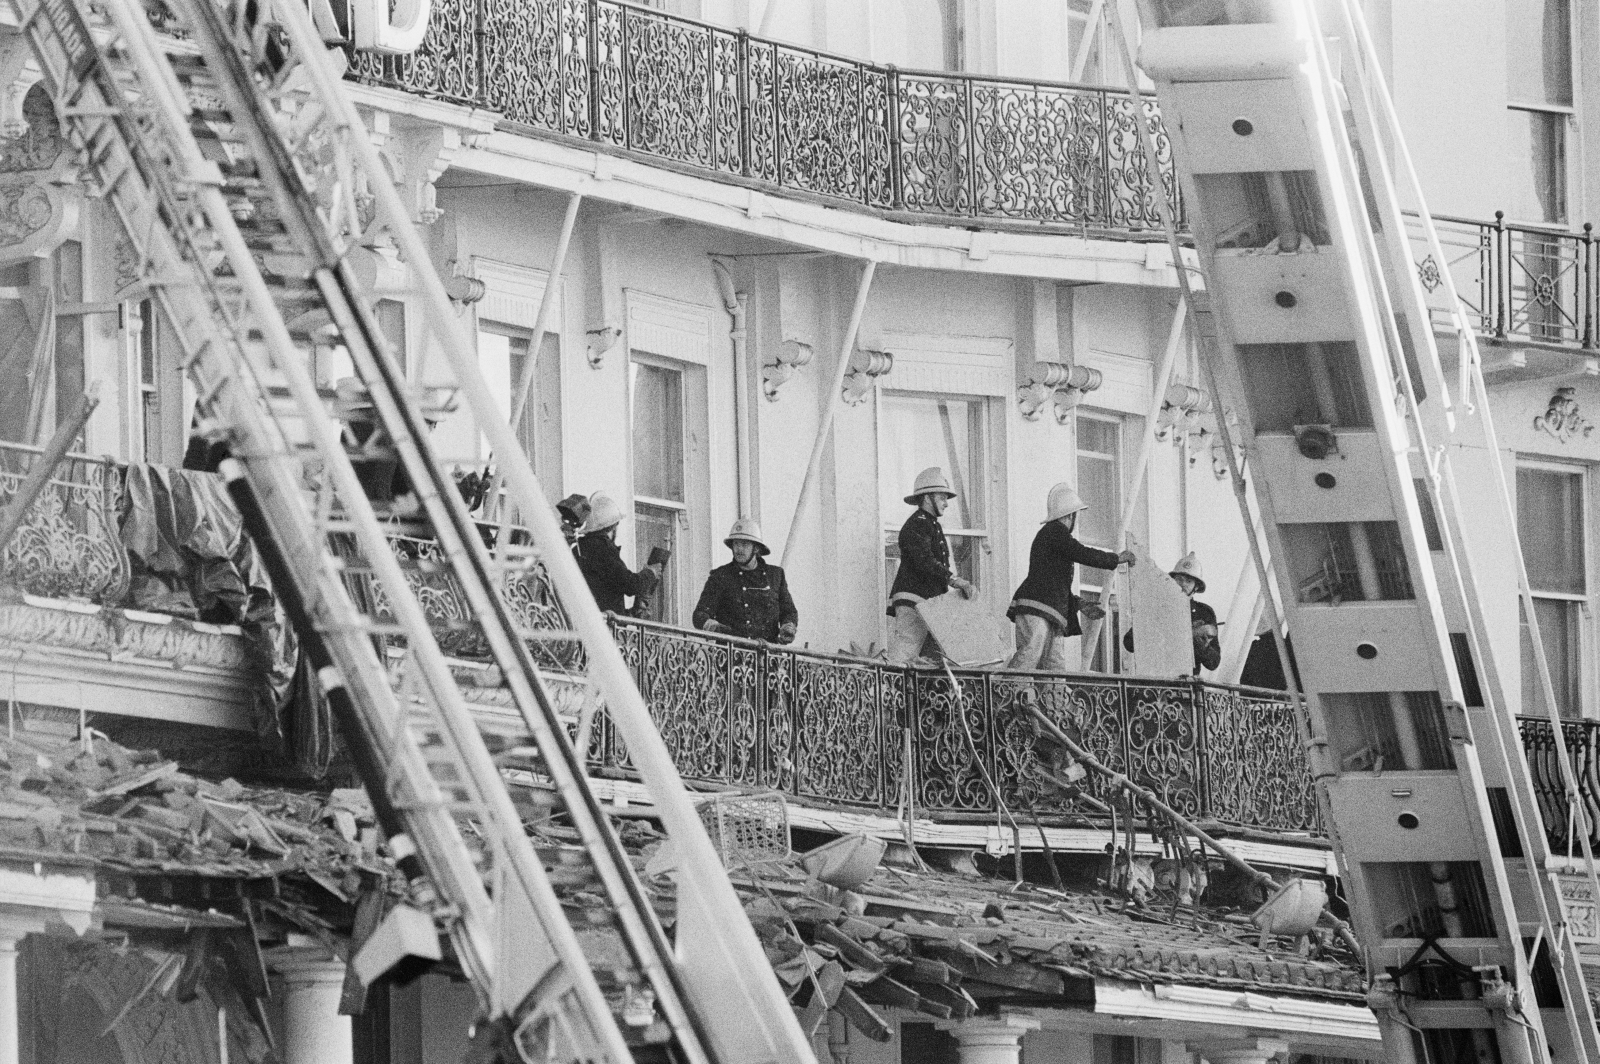 Rescuers who attended scene of 1984 Brighton bombing warned of asbestos risk